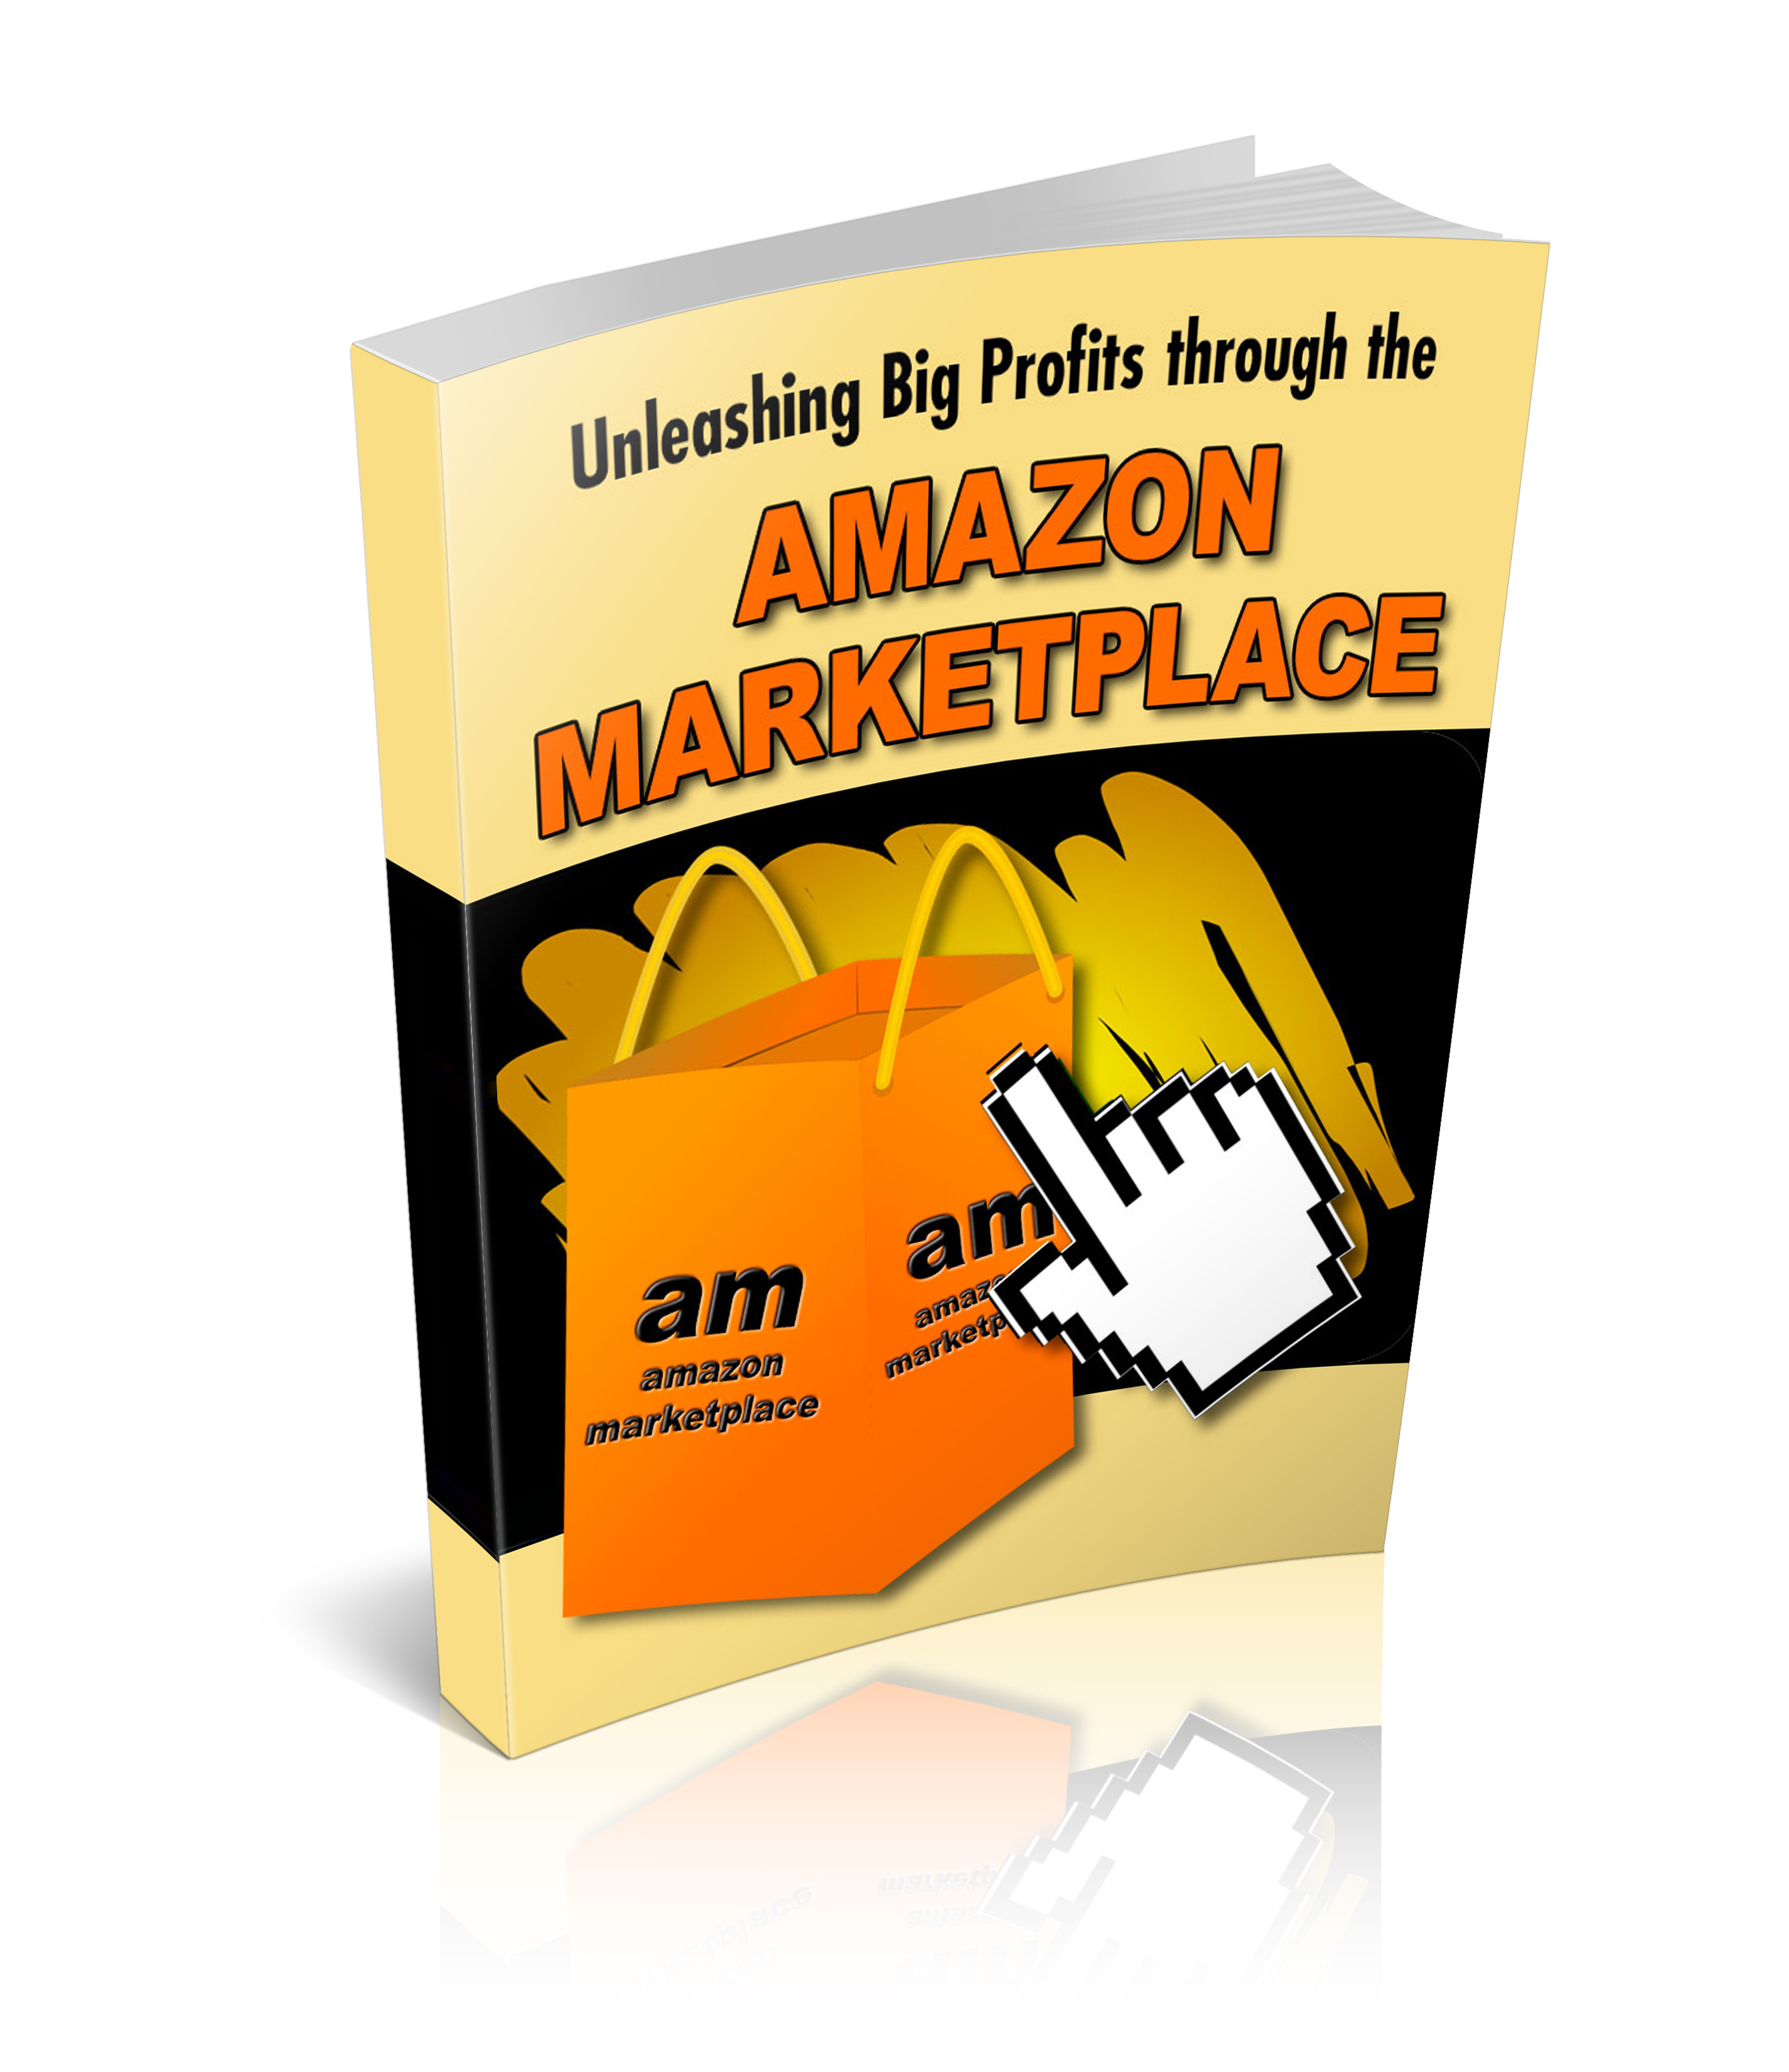 send you an e-book on how to Make Money Online with Amazon!